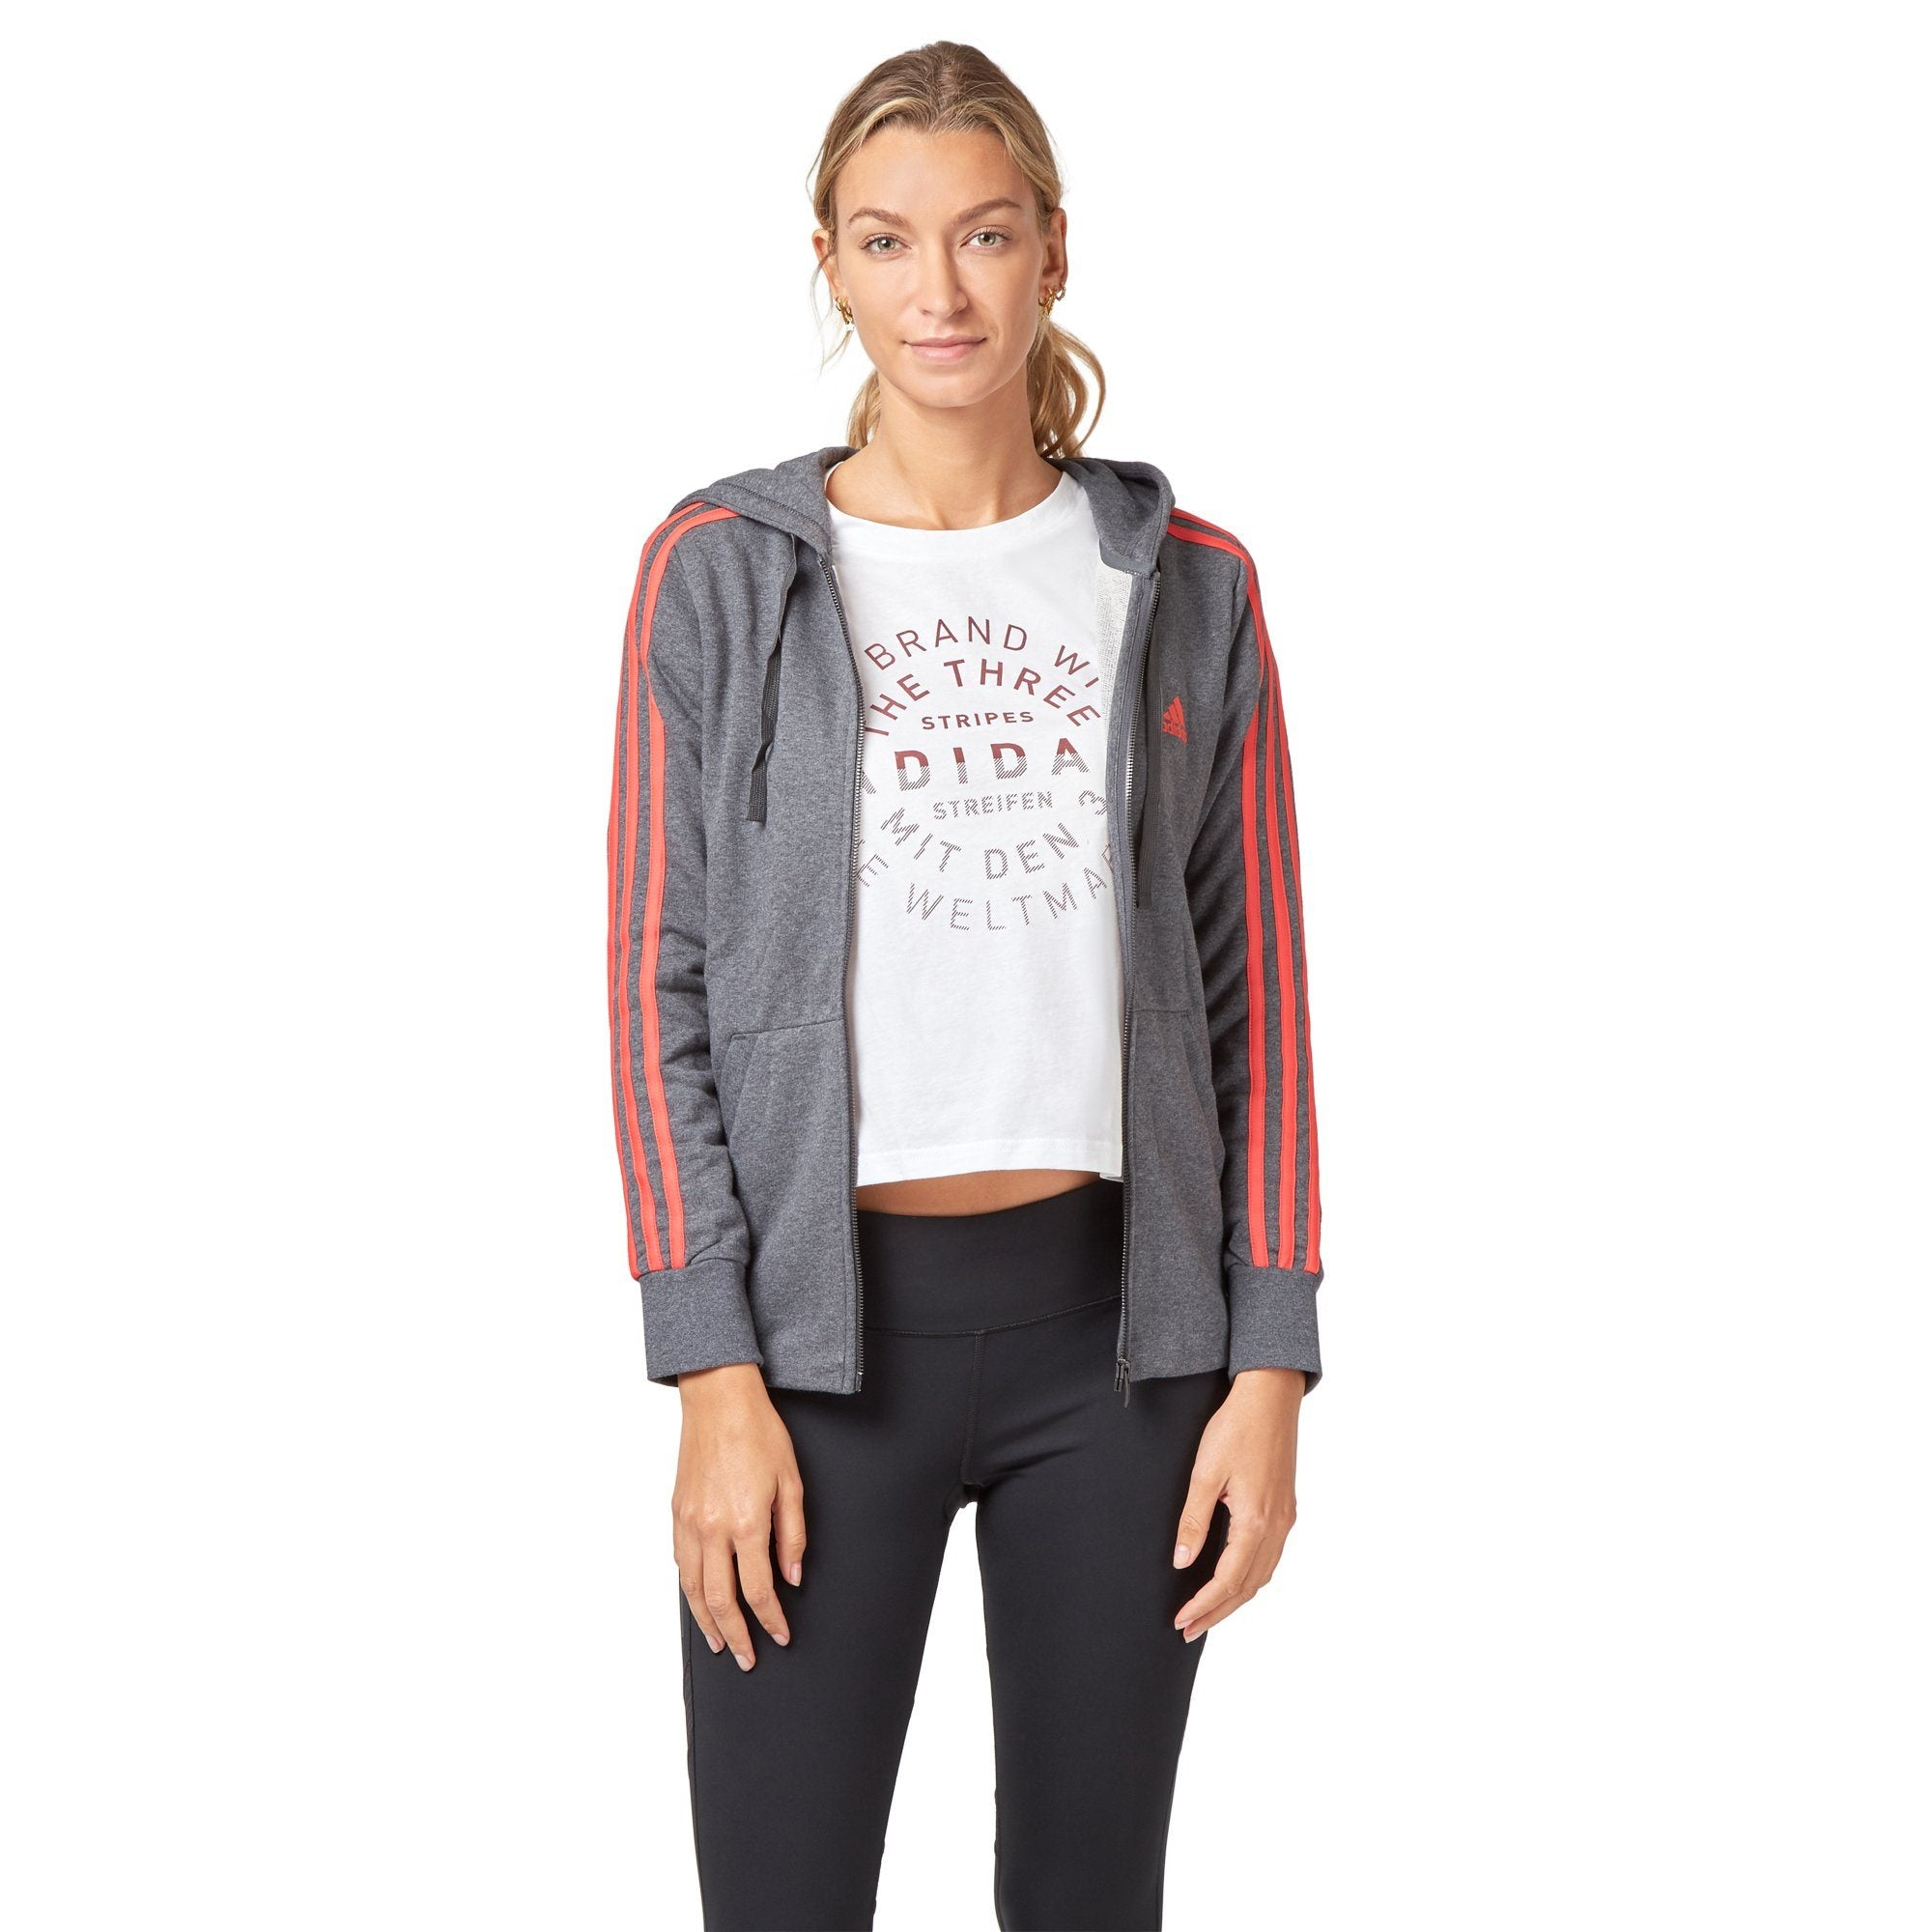 Adidas Women's Essentials 3 Stripes Hoodie - Dark Grey Heather/Real Coral Apparel Adidas